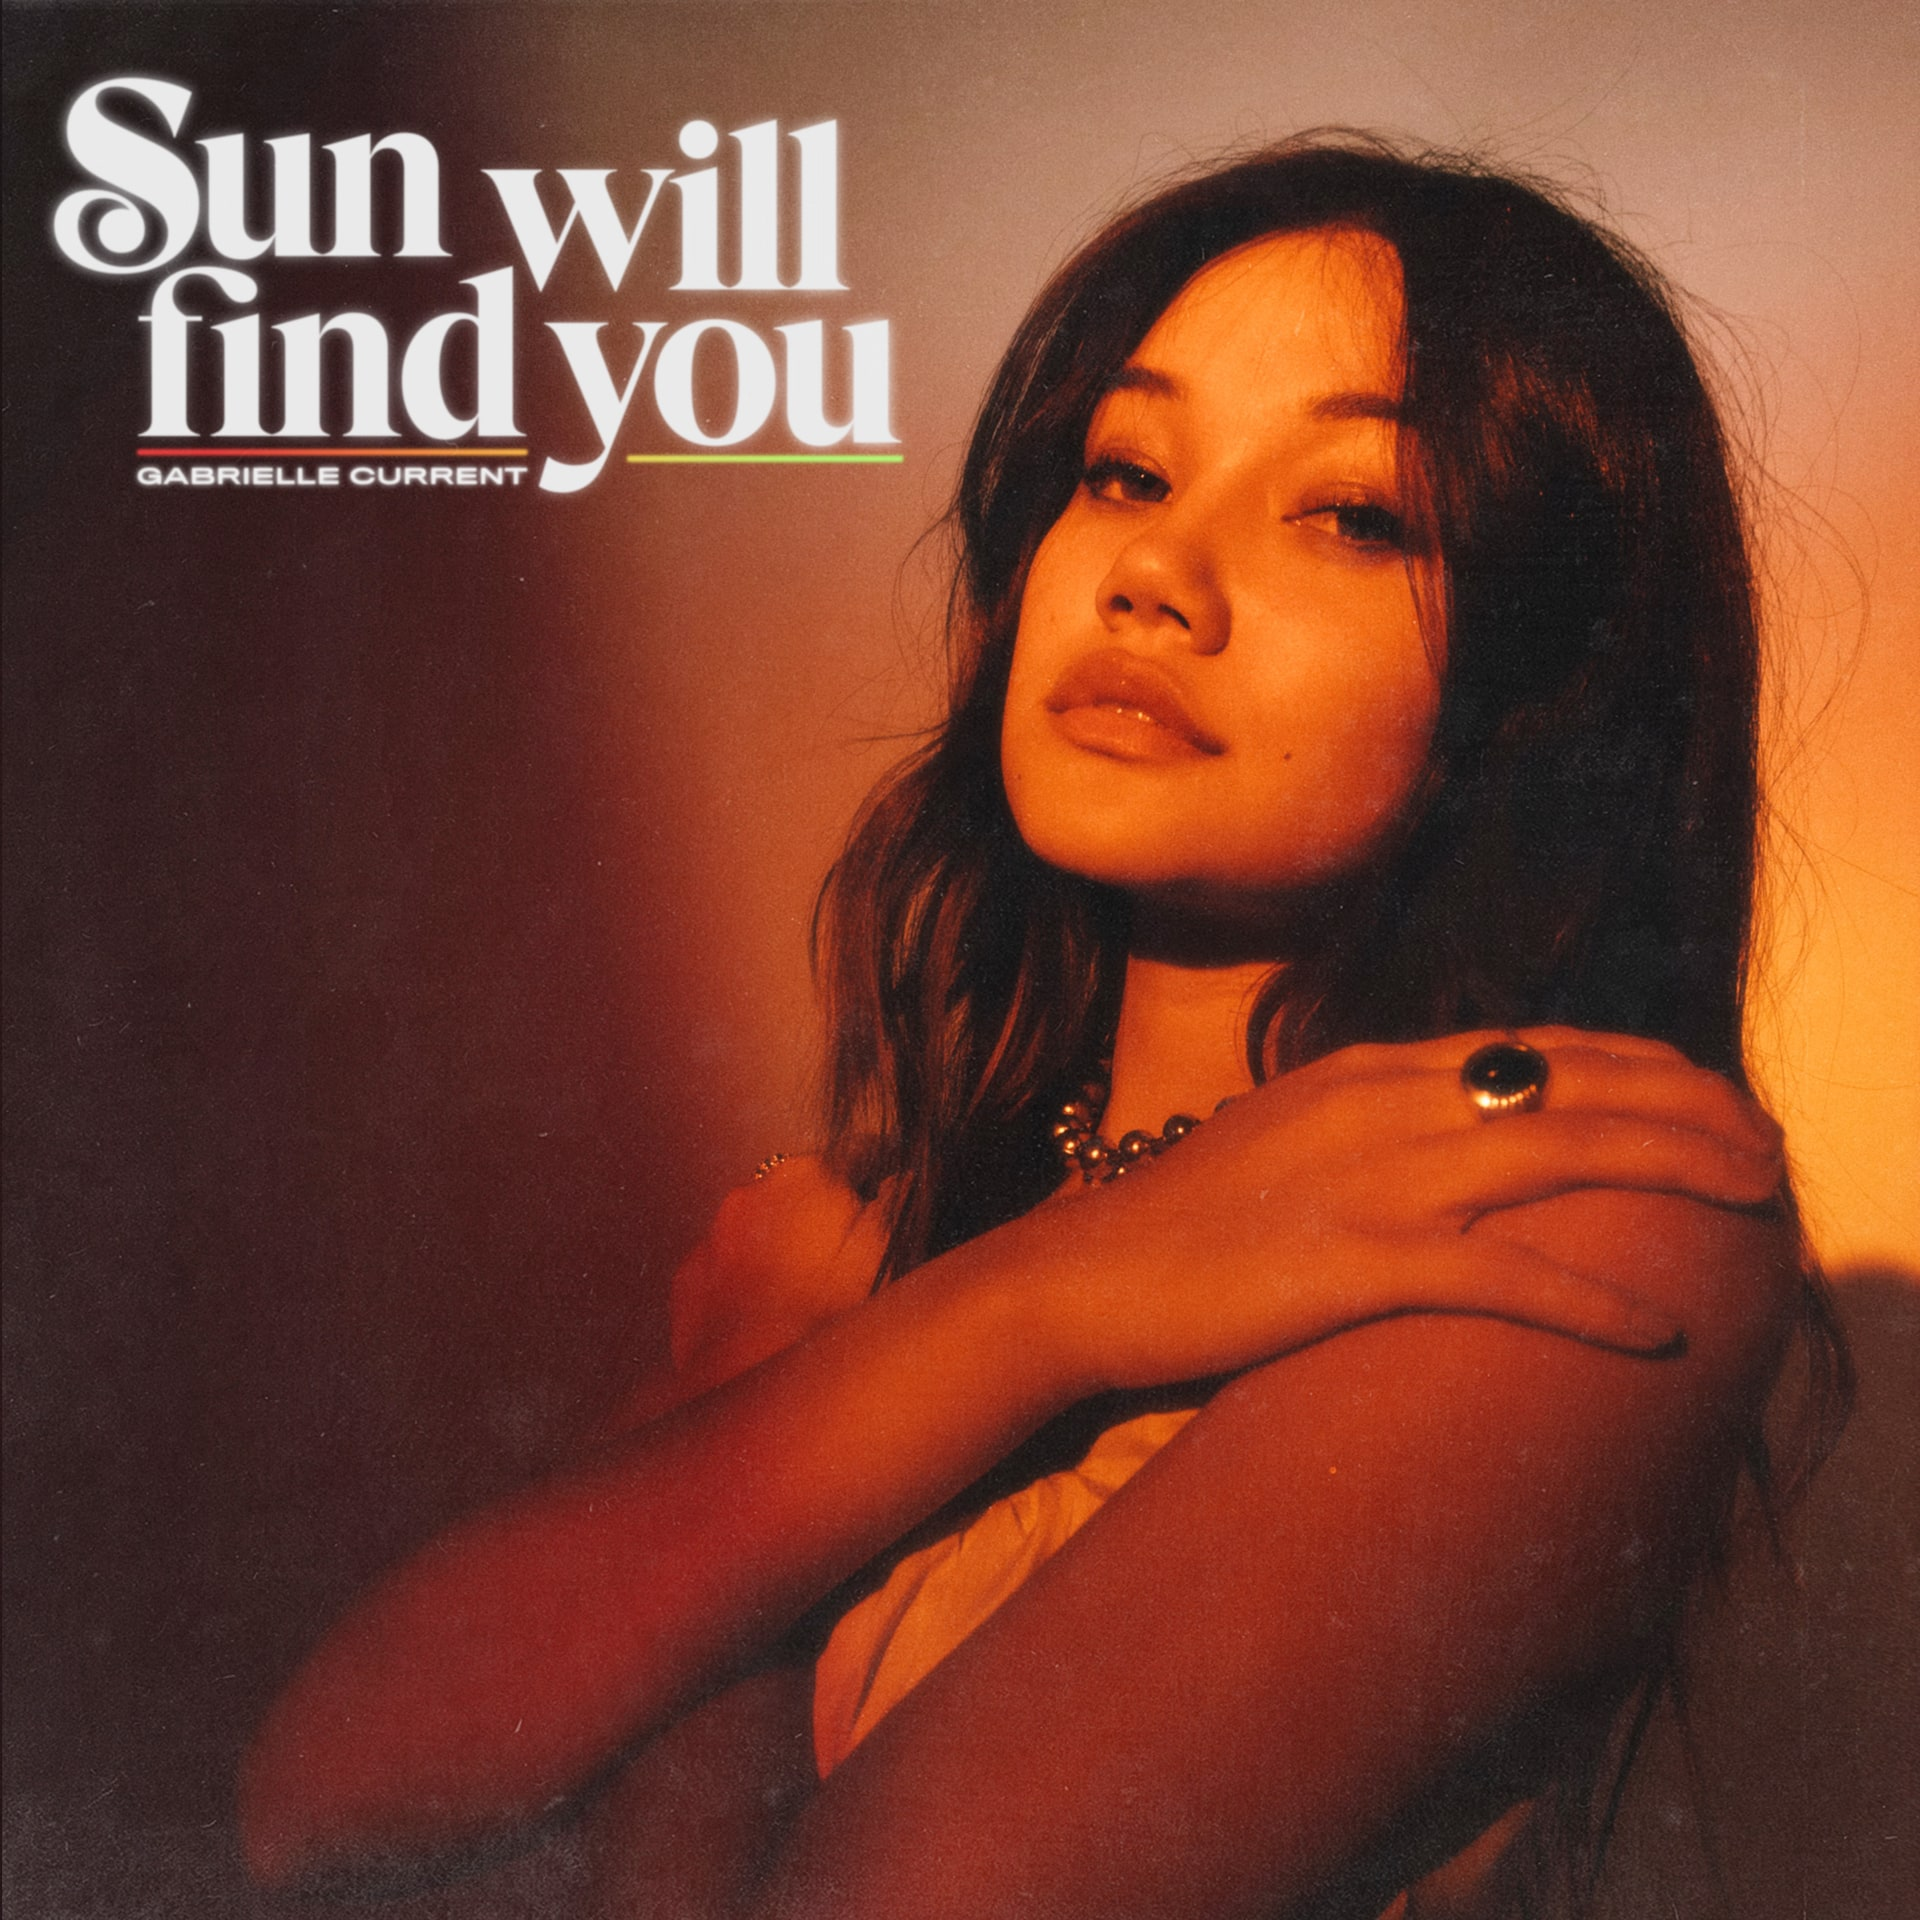 gabrielle-current_sun-will-find-you21